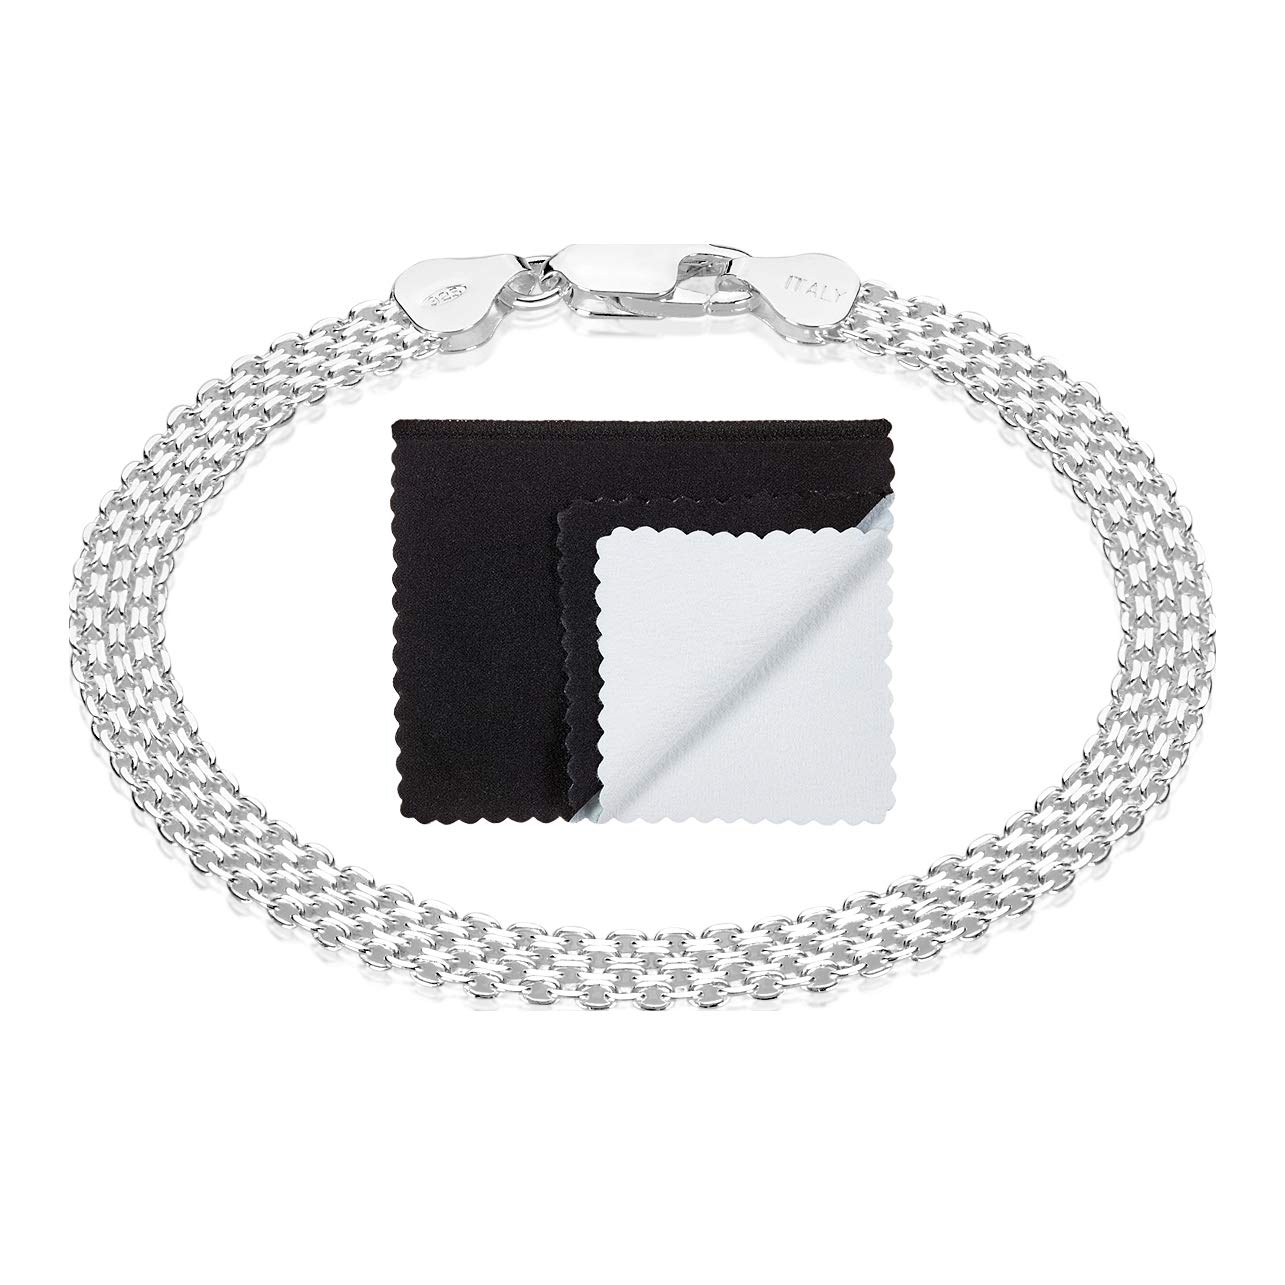 925 Sterling Silver Nickel-Free 5mm Bismark Chain Bracelet Made in Italy, 7'' + Cleaning Cloth